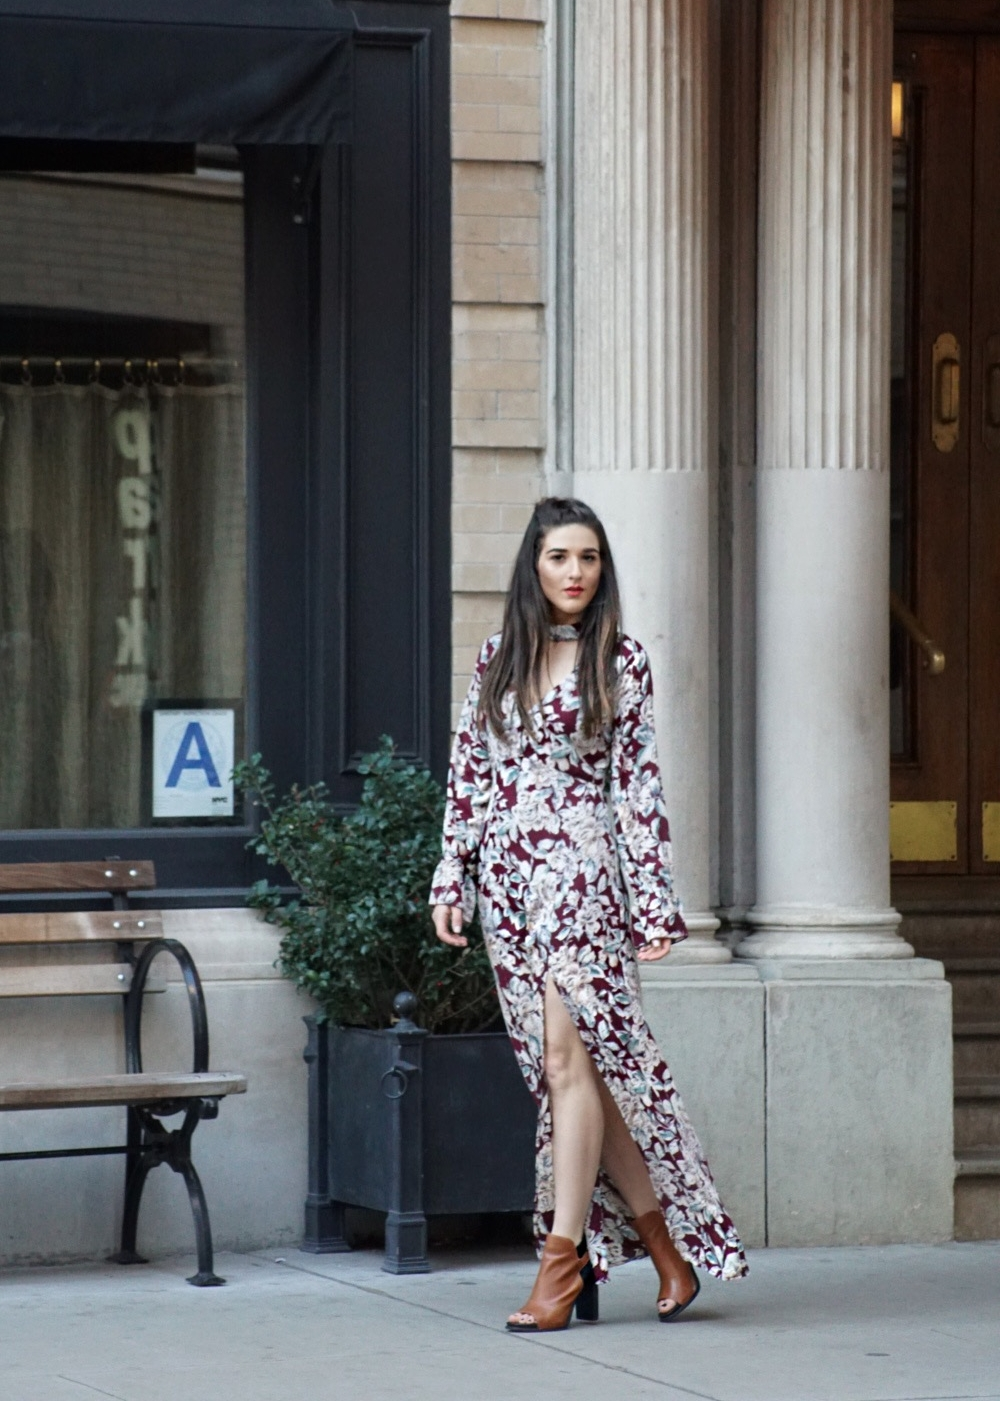 Trescool Floral Dress How To Stay Productive When Working From Home Esther Santer Fashion Blog NYC Street Style Blogger Outfit OOTD Trendy Pretty Spring Beautiful Shoes M4D3 Topknot Braid Wearing Online Shopping Photoshoot Inspiration Inspo Women Girl.JPG